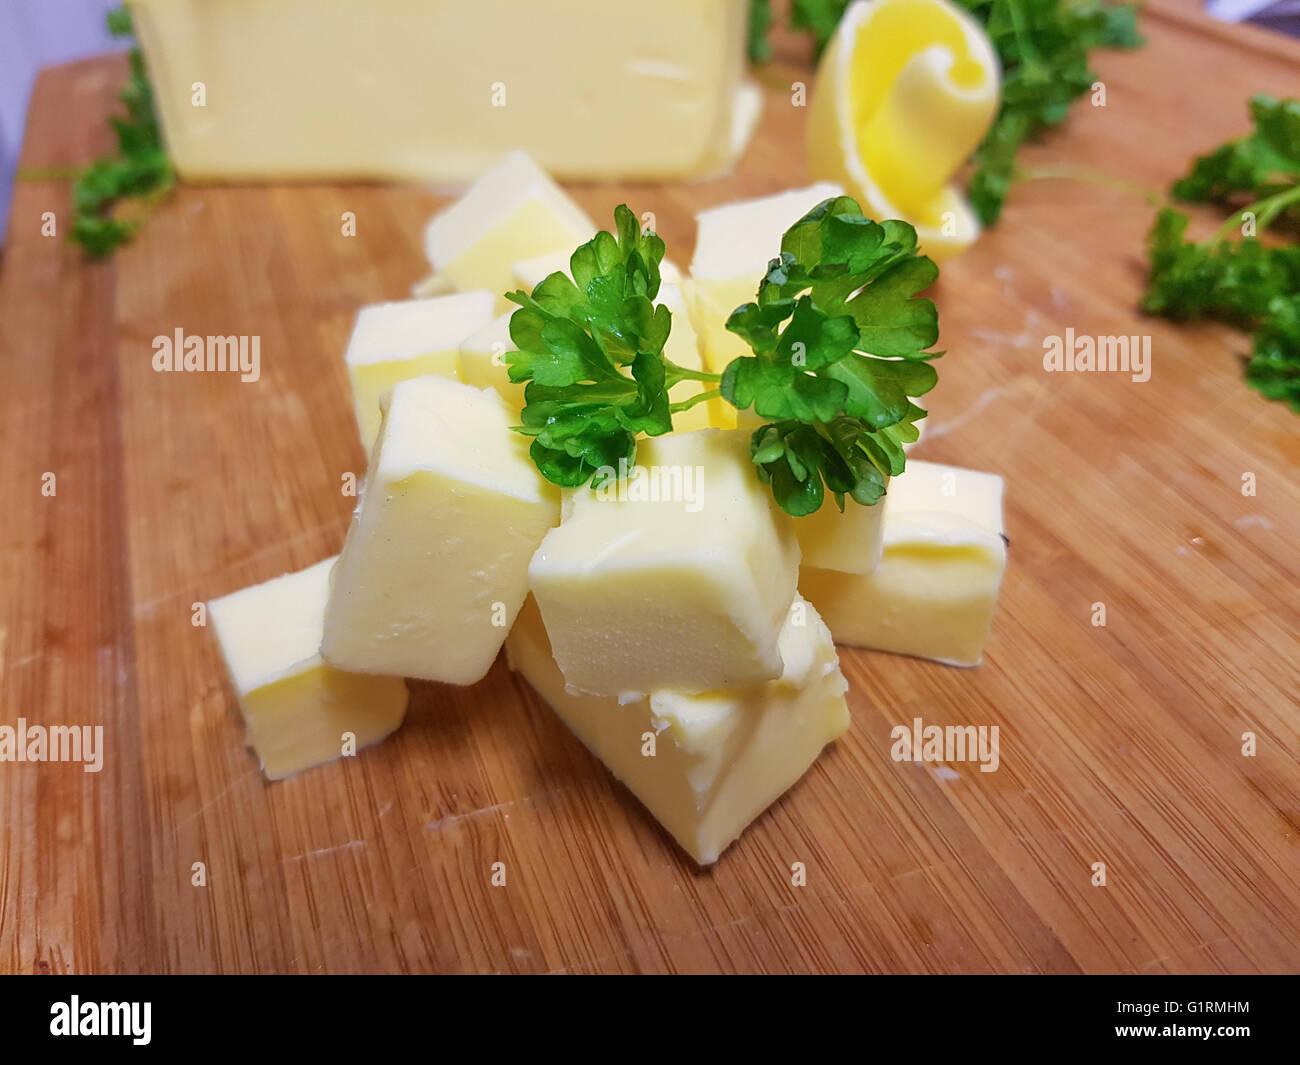 Pile of fresh, yellow butter cubes, on a wooden cutting board Stock Photo